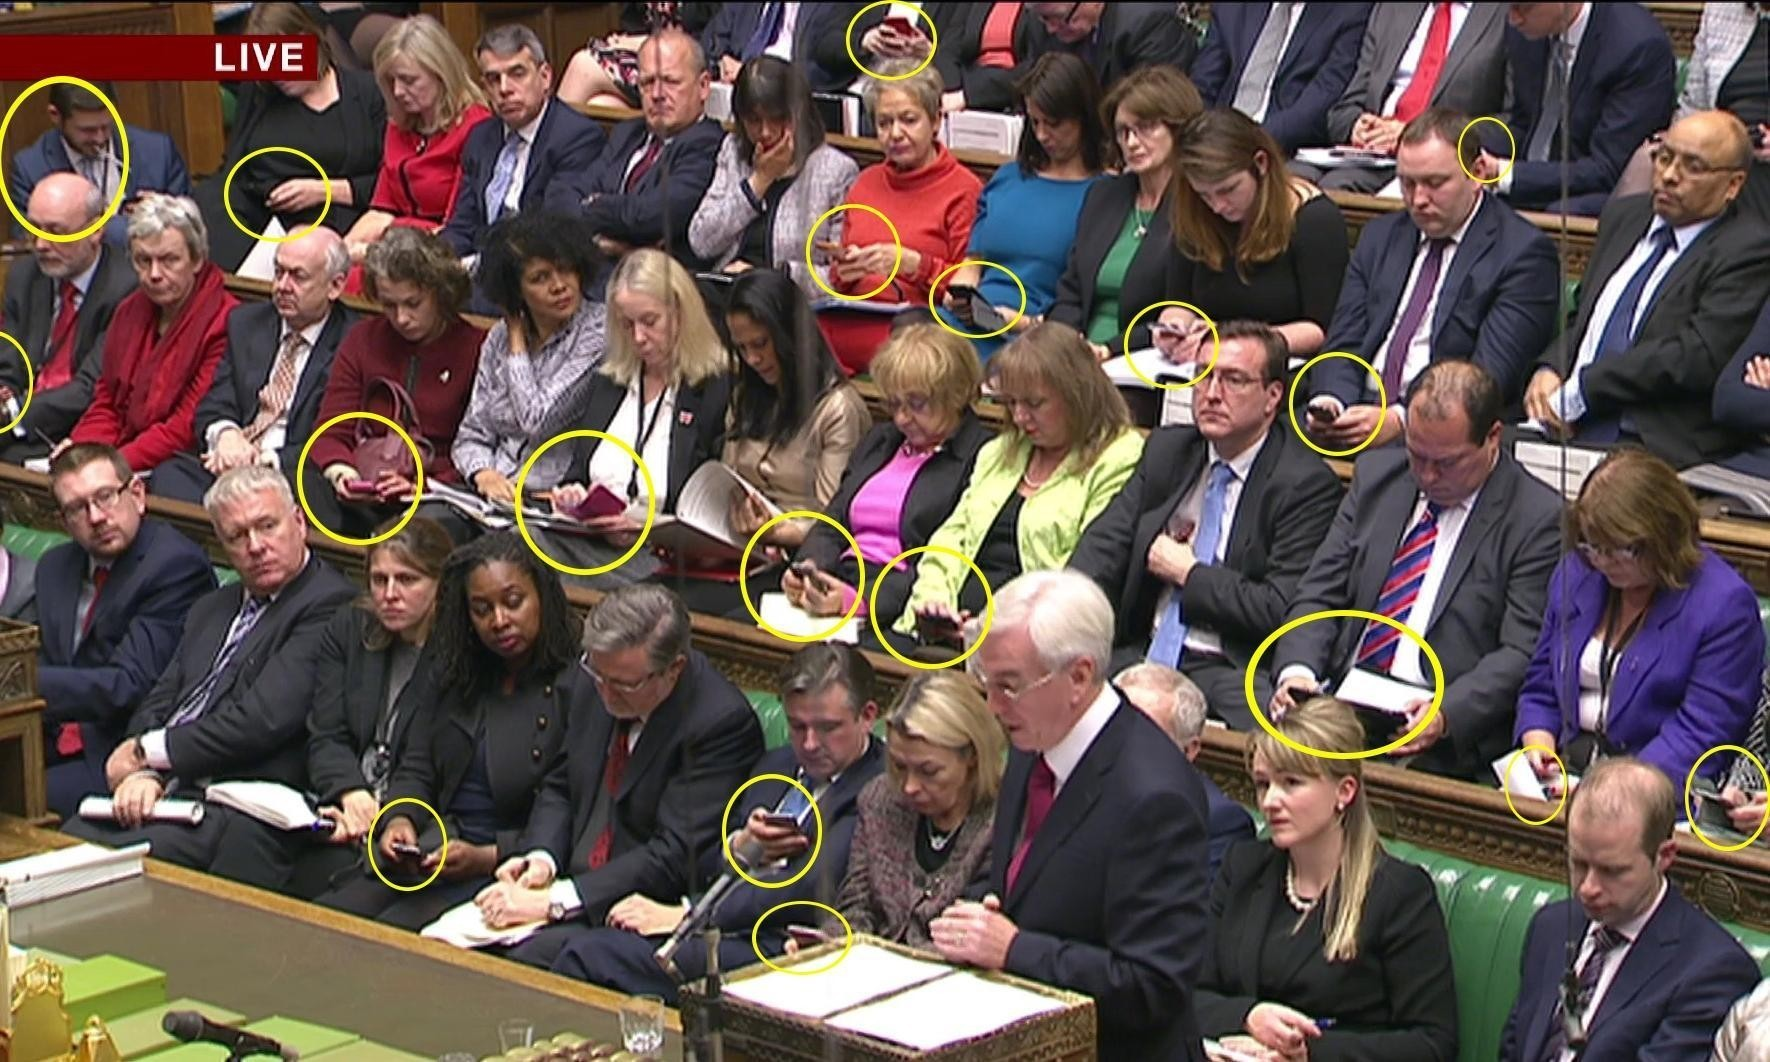 What were all those MPs doing on their phones?